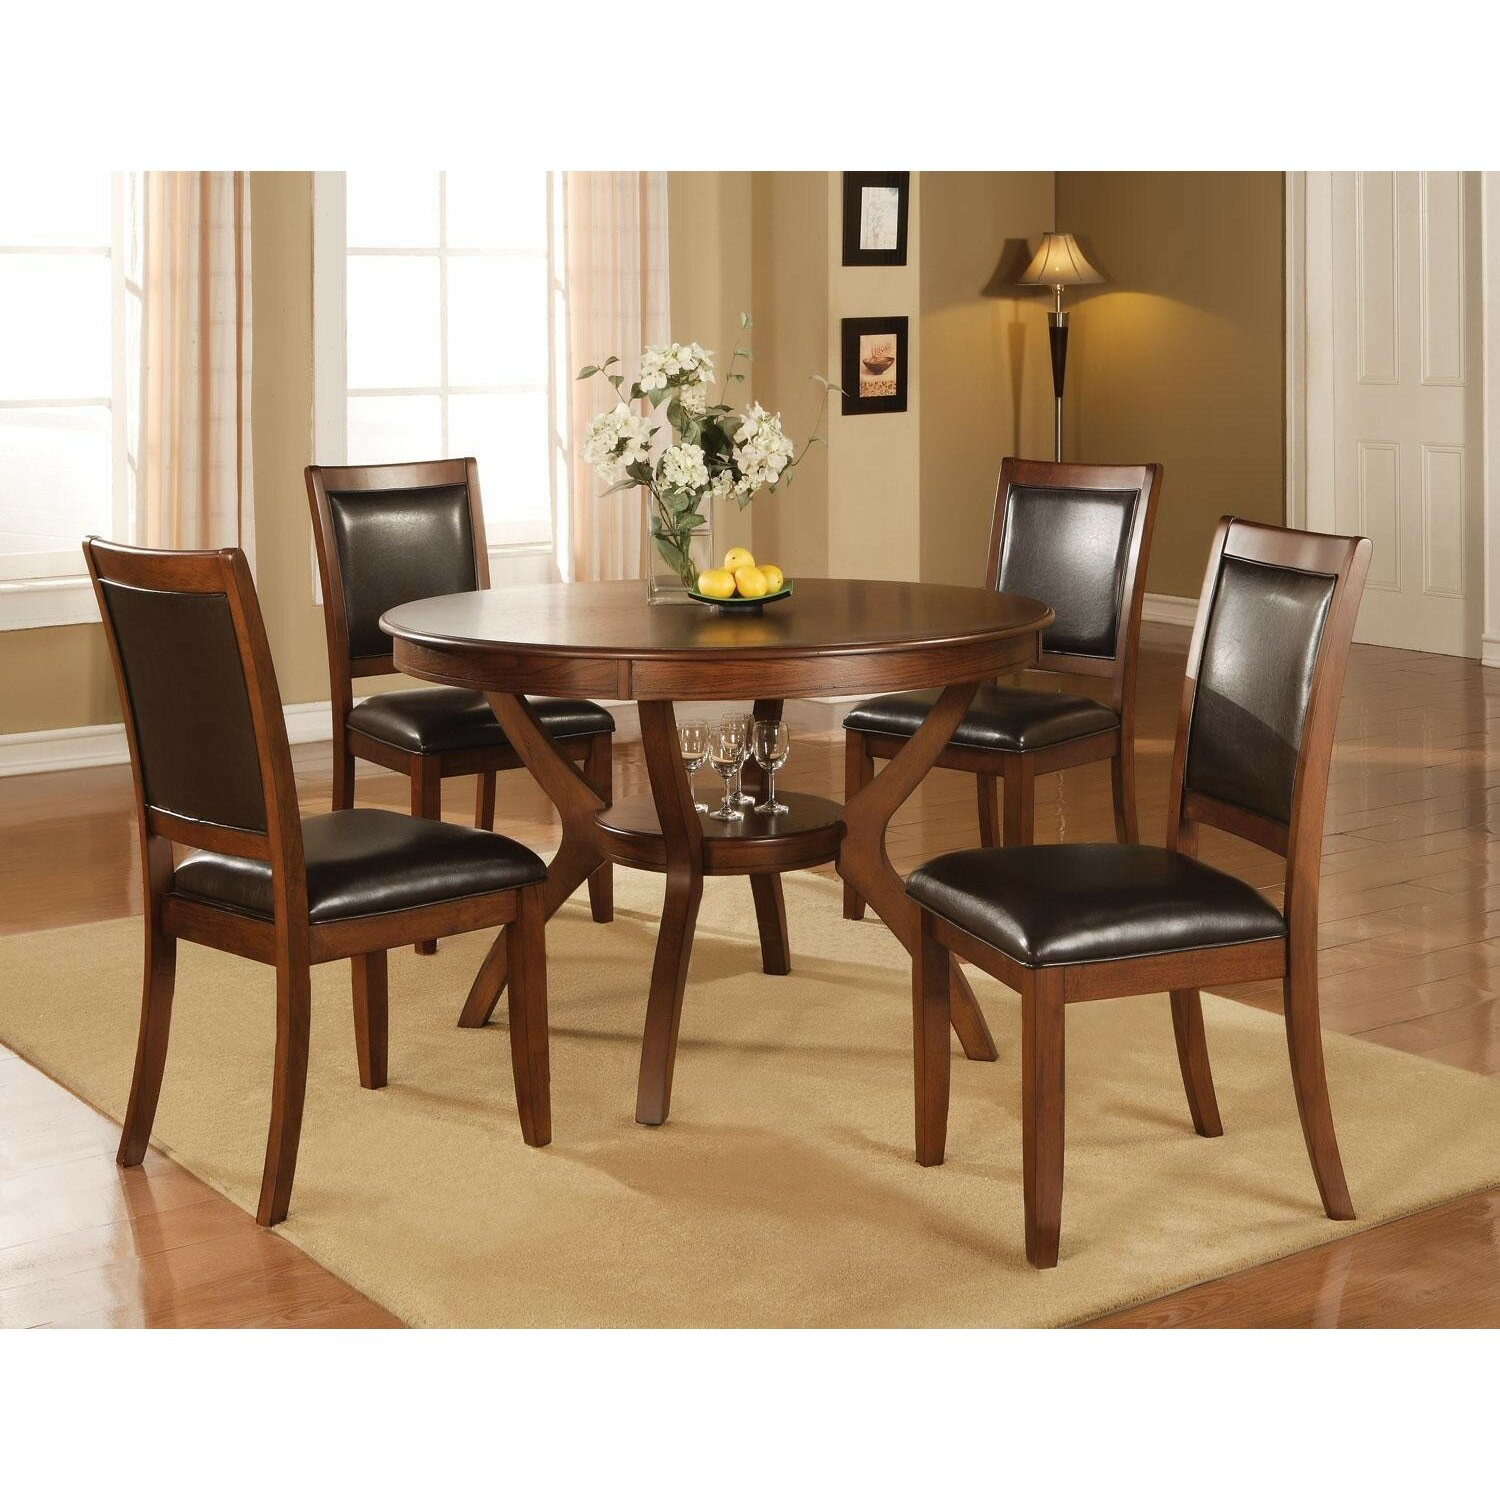 Infini furnishings 5 piece dining set reviews wayfair for 2 piece dining room set